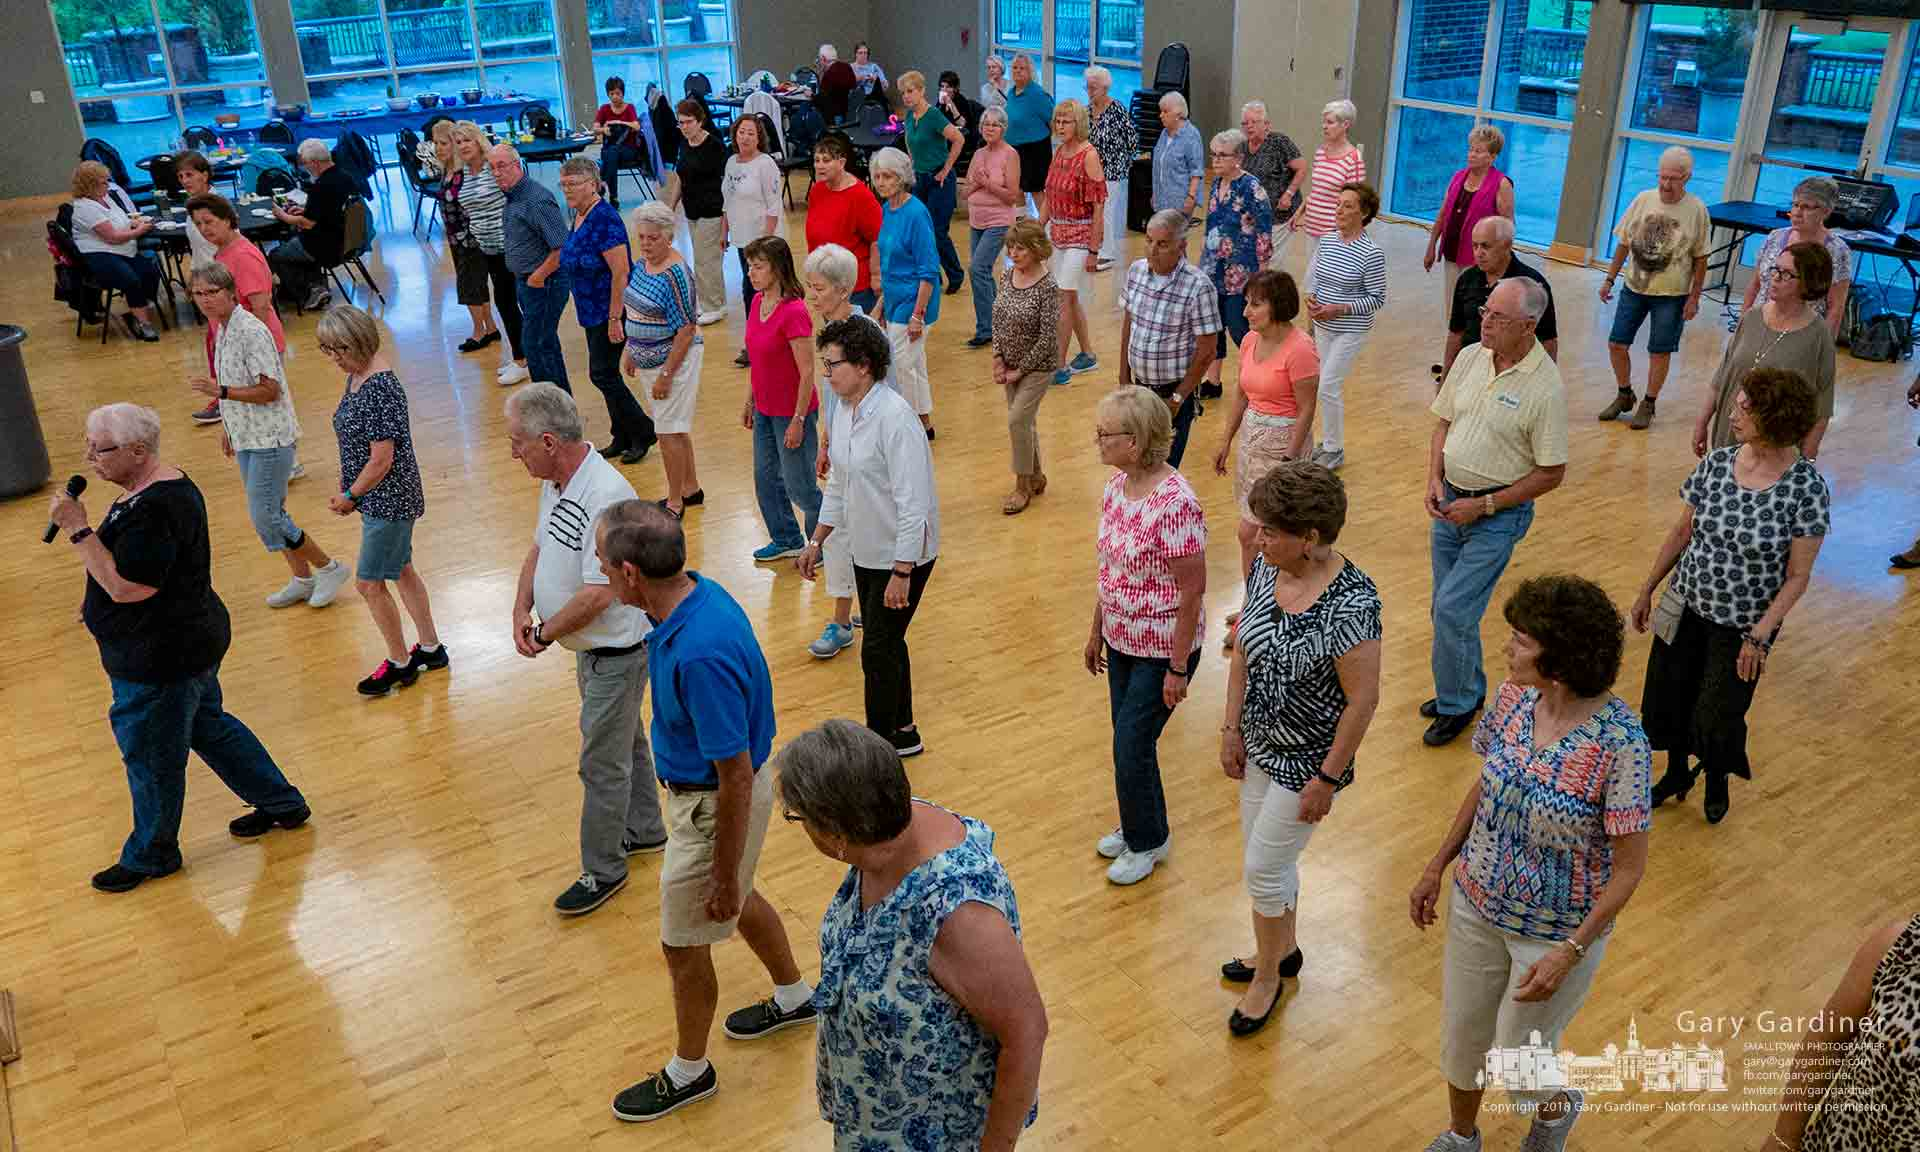 Line dancers step through their latest routine at the quarterly line dancing night at the community center. My Final Photo for June 8, 2018.